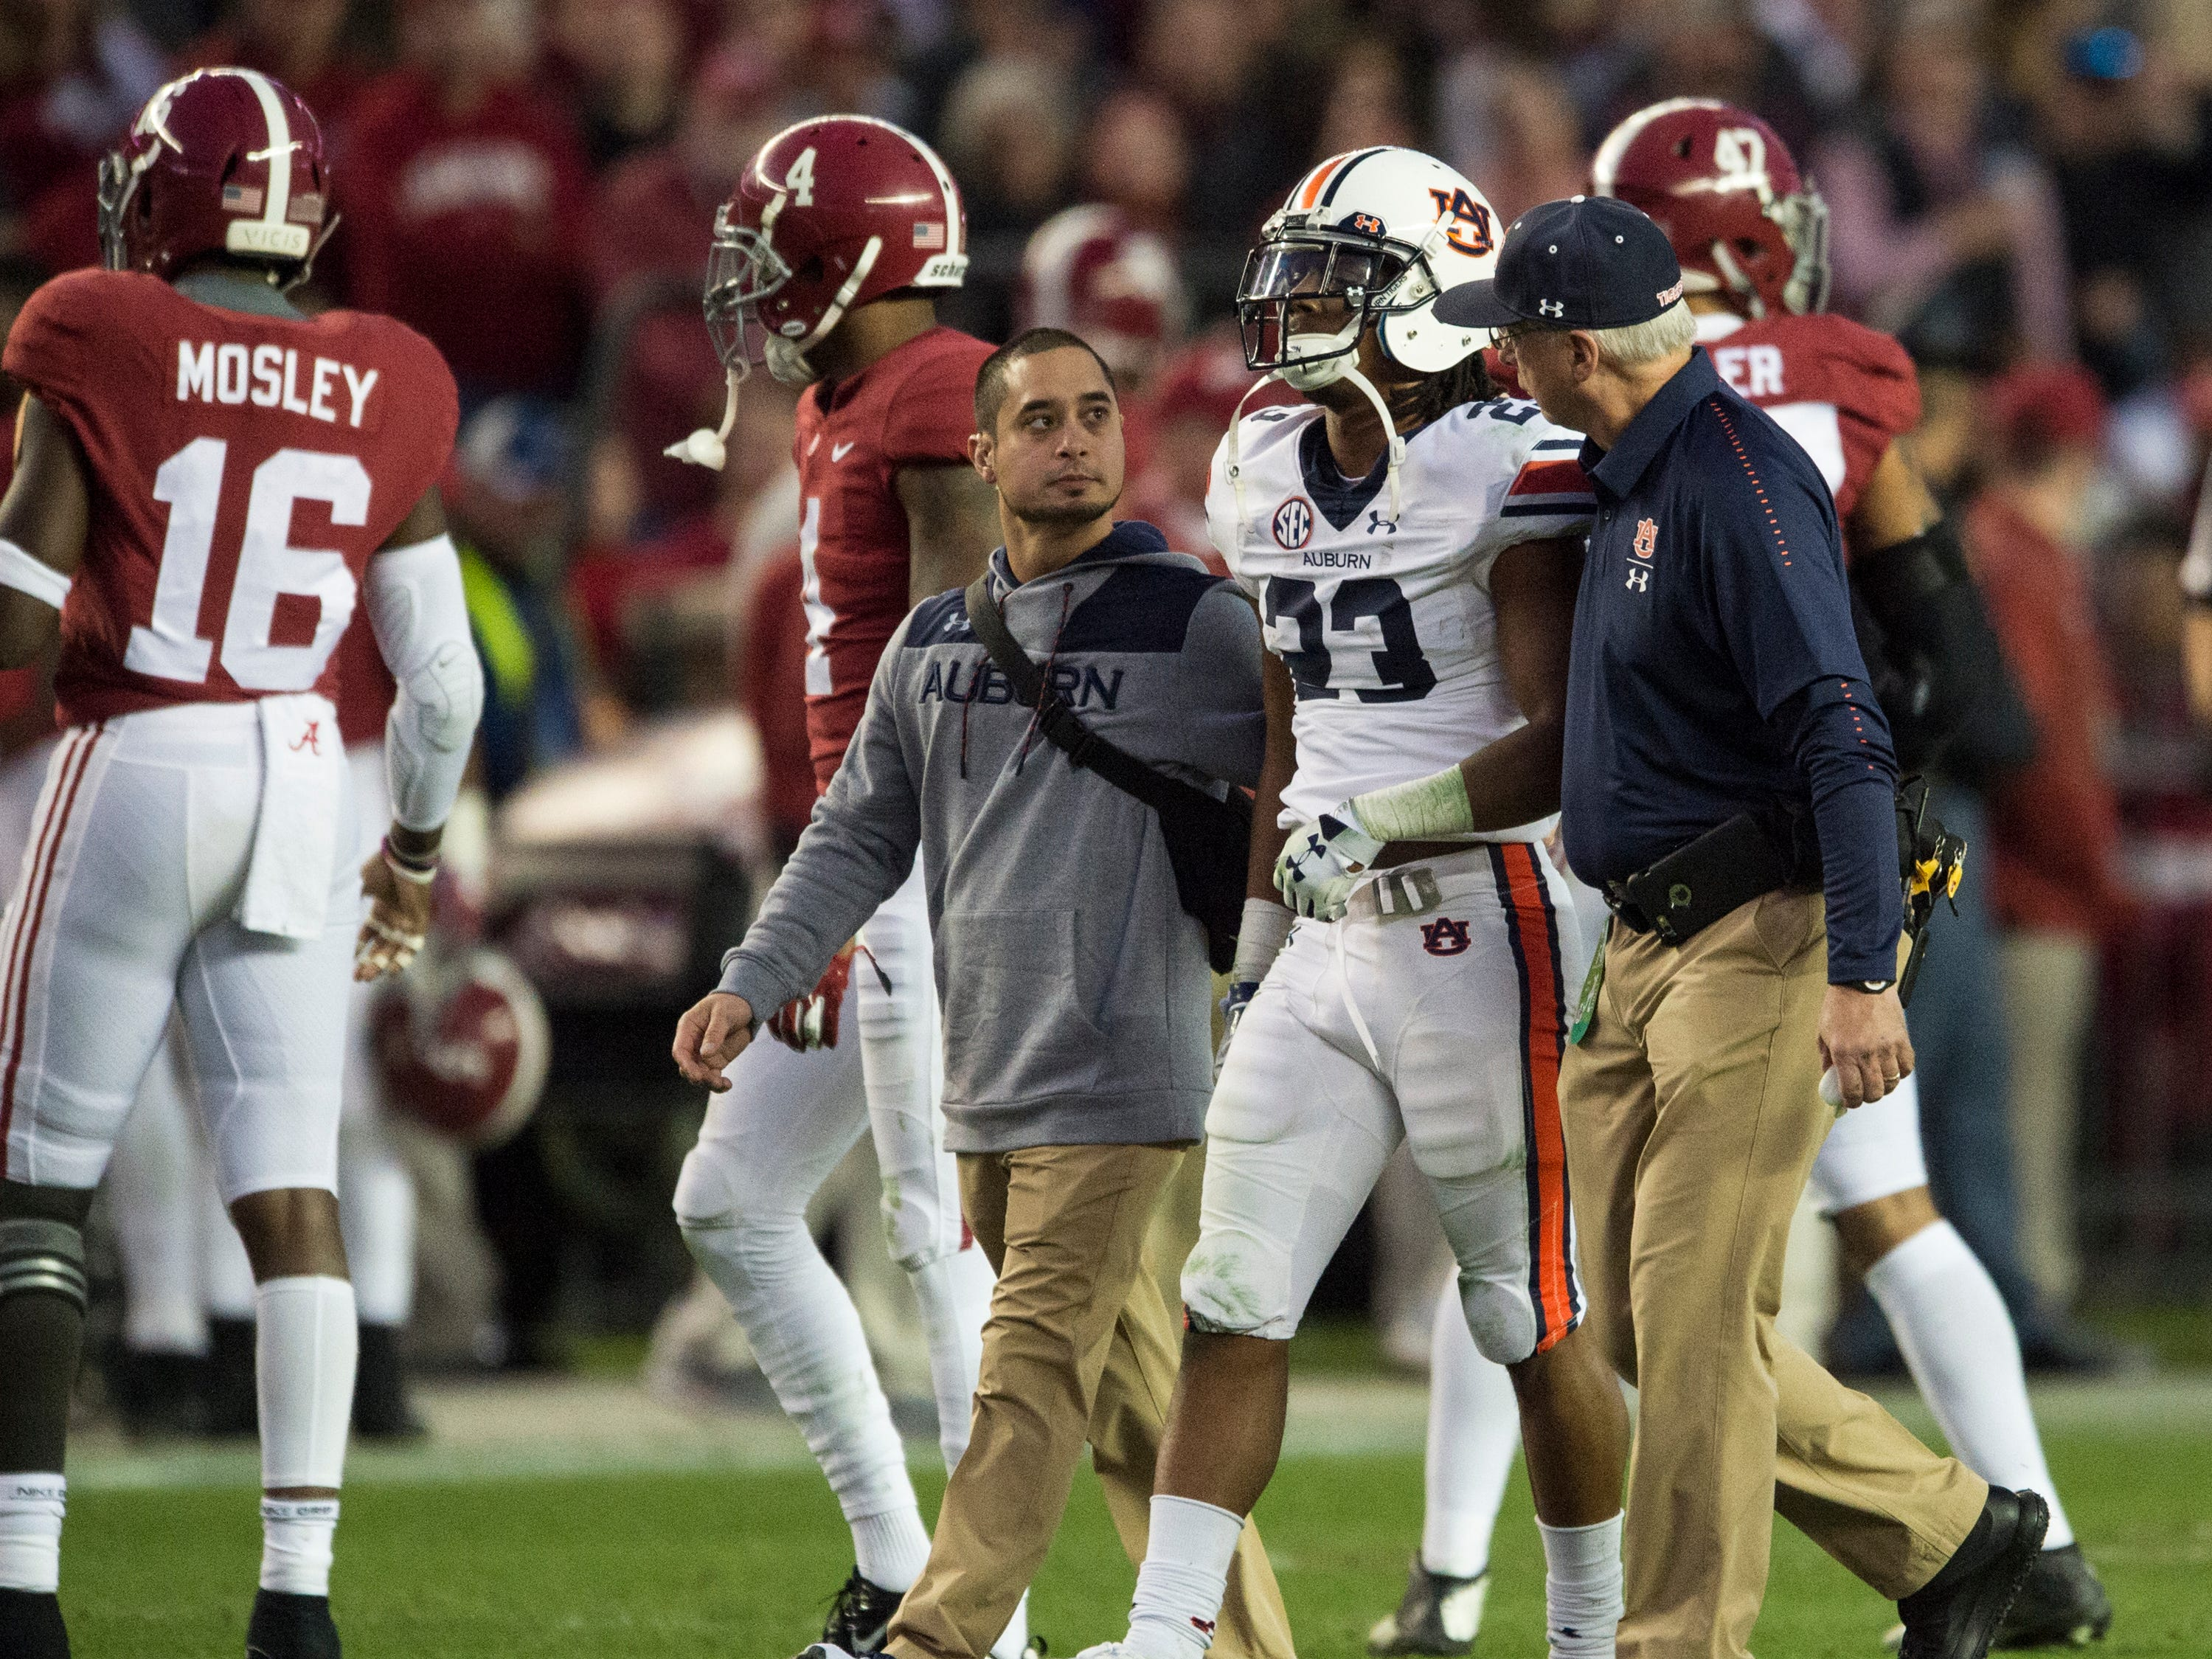 Auburn wide receiver Ryan Davis (23) walks off the field after sustaining an injury during the Iron Bowl at Bryant-Denny Stadium in Tuscaloosa, Ala., on Saturday, Nov. 24, 2018. Alabama defeated Auburn 52-21.